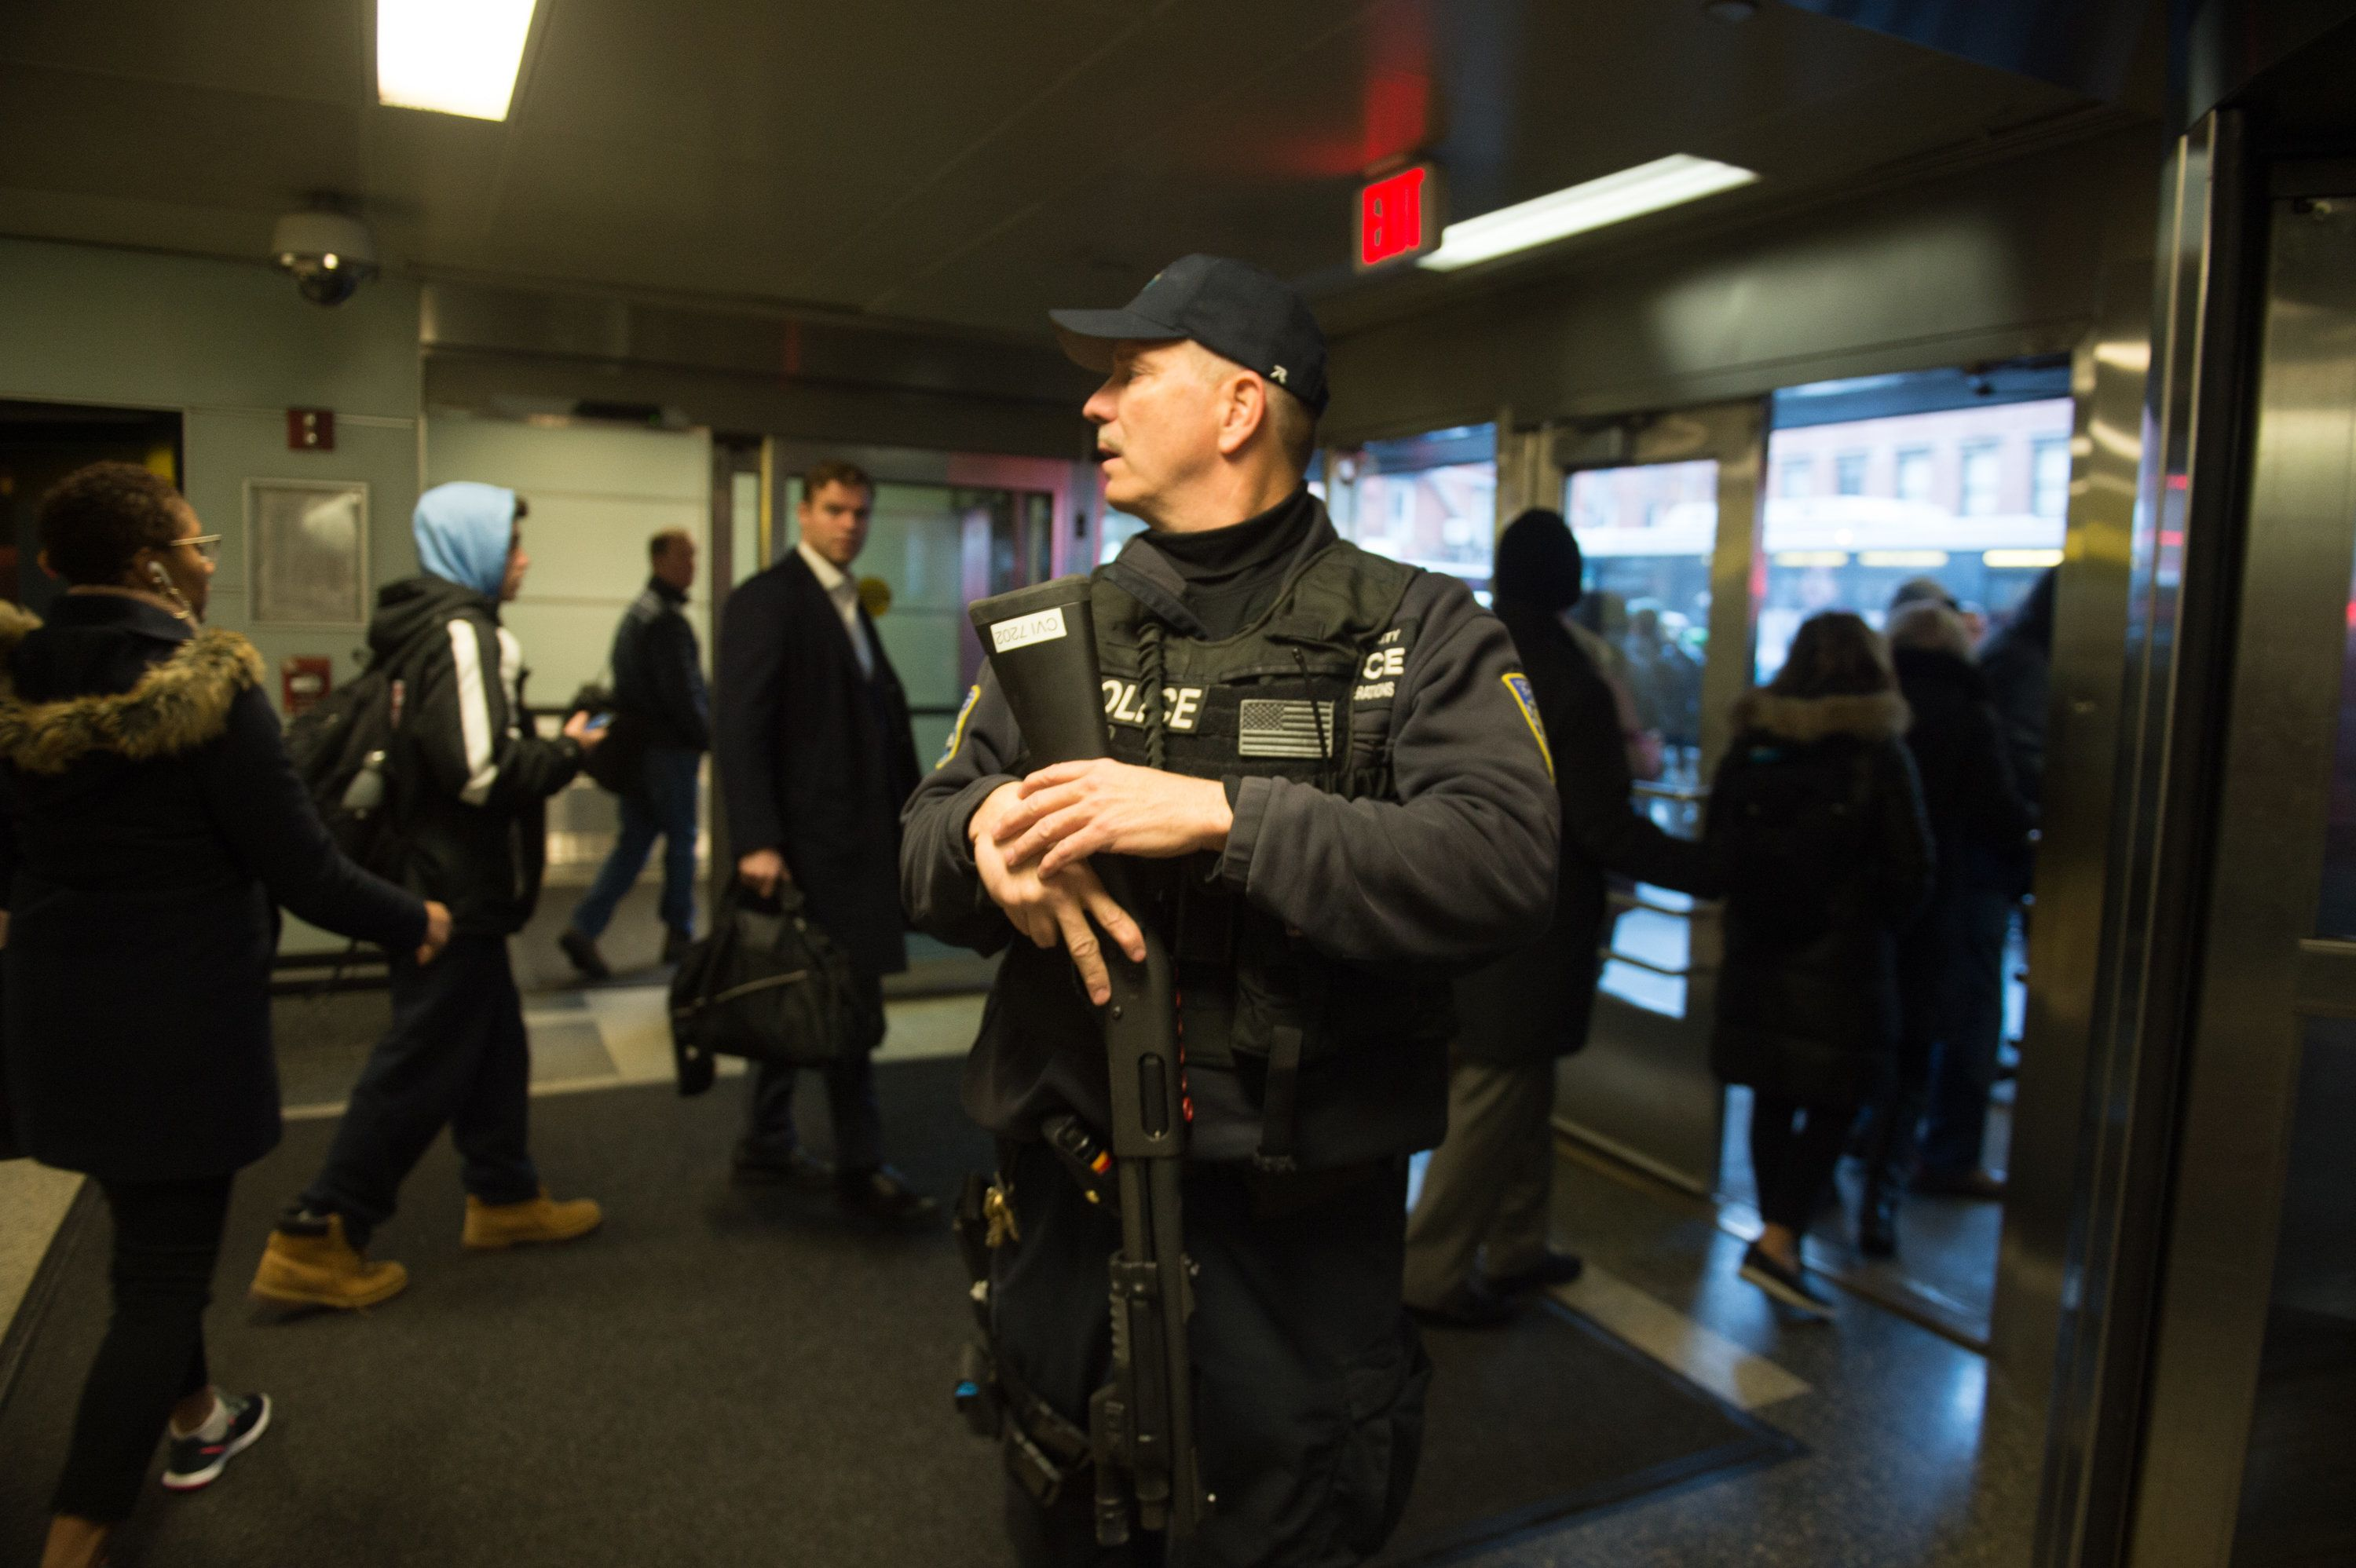 Port Authority Police watch as people evacuate after a reported explosion at the Port Authority Bus Terminal on December 11, 2017 in New York.  New York police said Monday that they were investigating an explosion of 'unknown origin' in busy downtown Manhattan, and that people were being evacuated. Media reports said at least one person had been detained after the blast near the Port Authority transit terminal, close to Times Square.Early media reports said the blast came from a pipe bomb, and that several people were injured.  / AFP PHOTO / Bryan R. Smith        (Photo credit should read BRYAN R. SMITH/AFP/Getty Images)